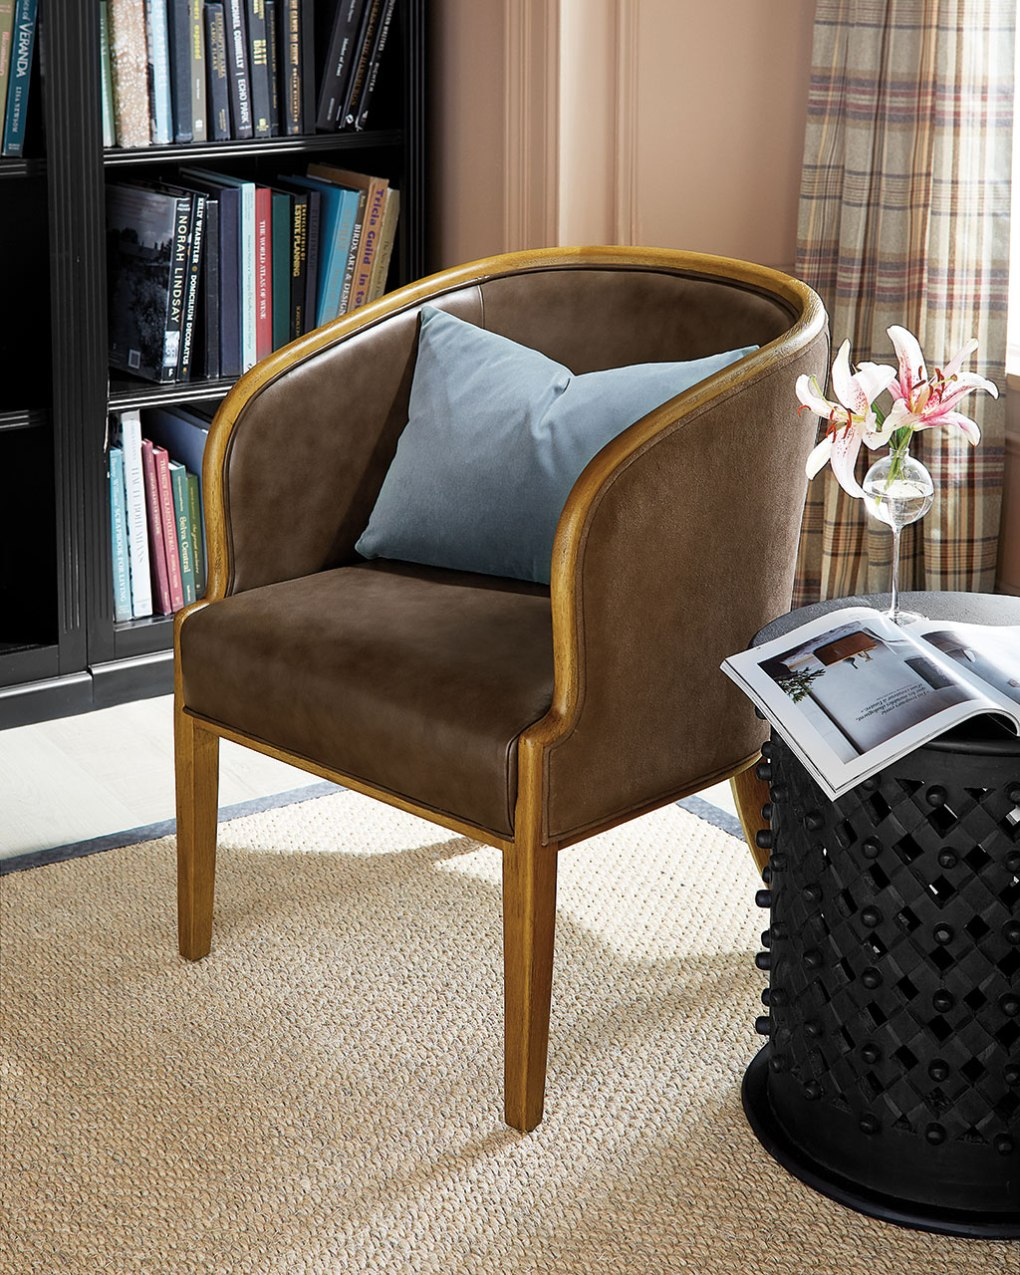 A small scaled rounded leather furniture chair in a living room